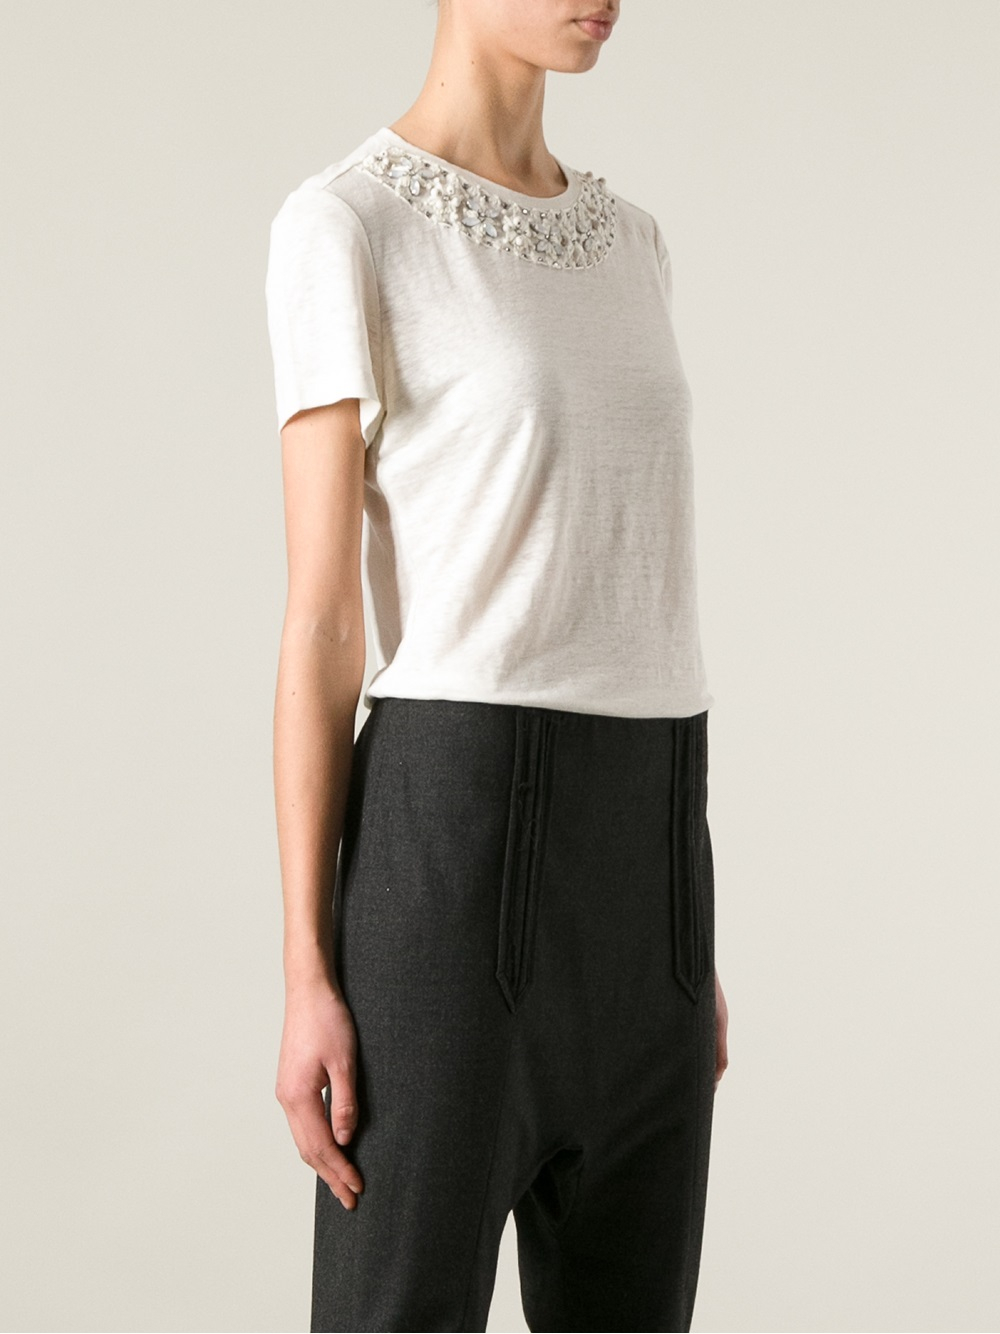 Tory burch embellished tshirt in white lyst for Tory burch t shirt